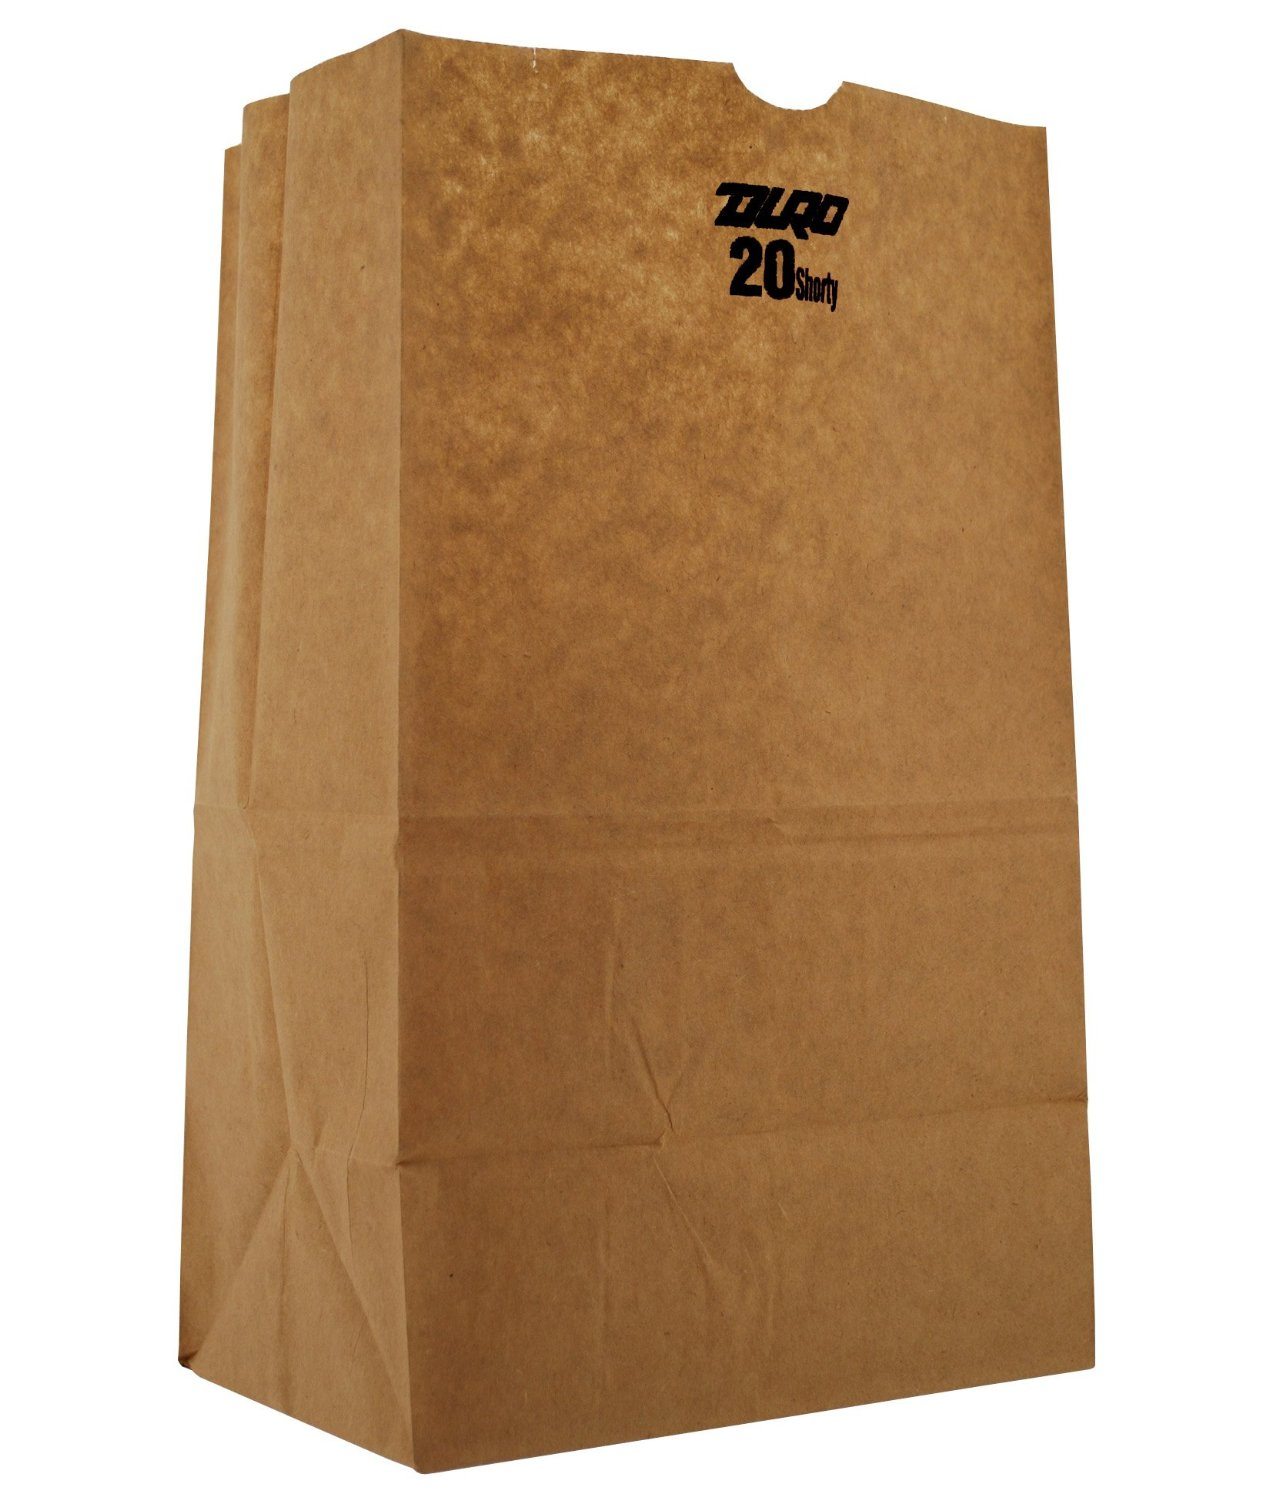 "20# Short Natural 8.25"" x 5.31"" x 13.38"" Grocery Bags -"